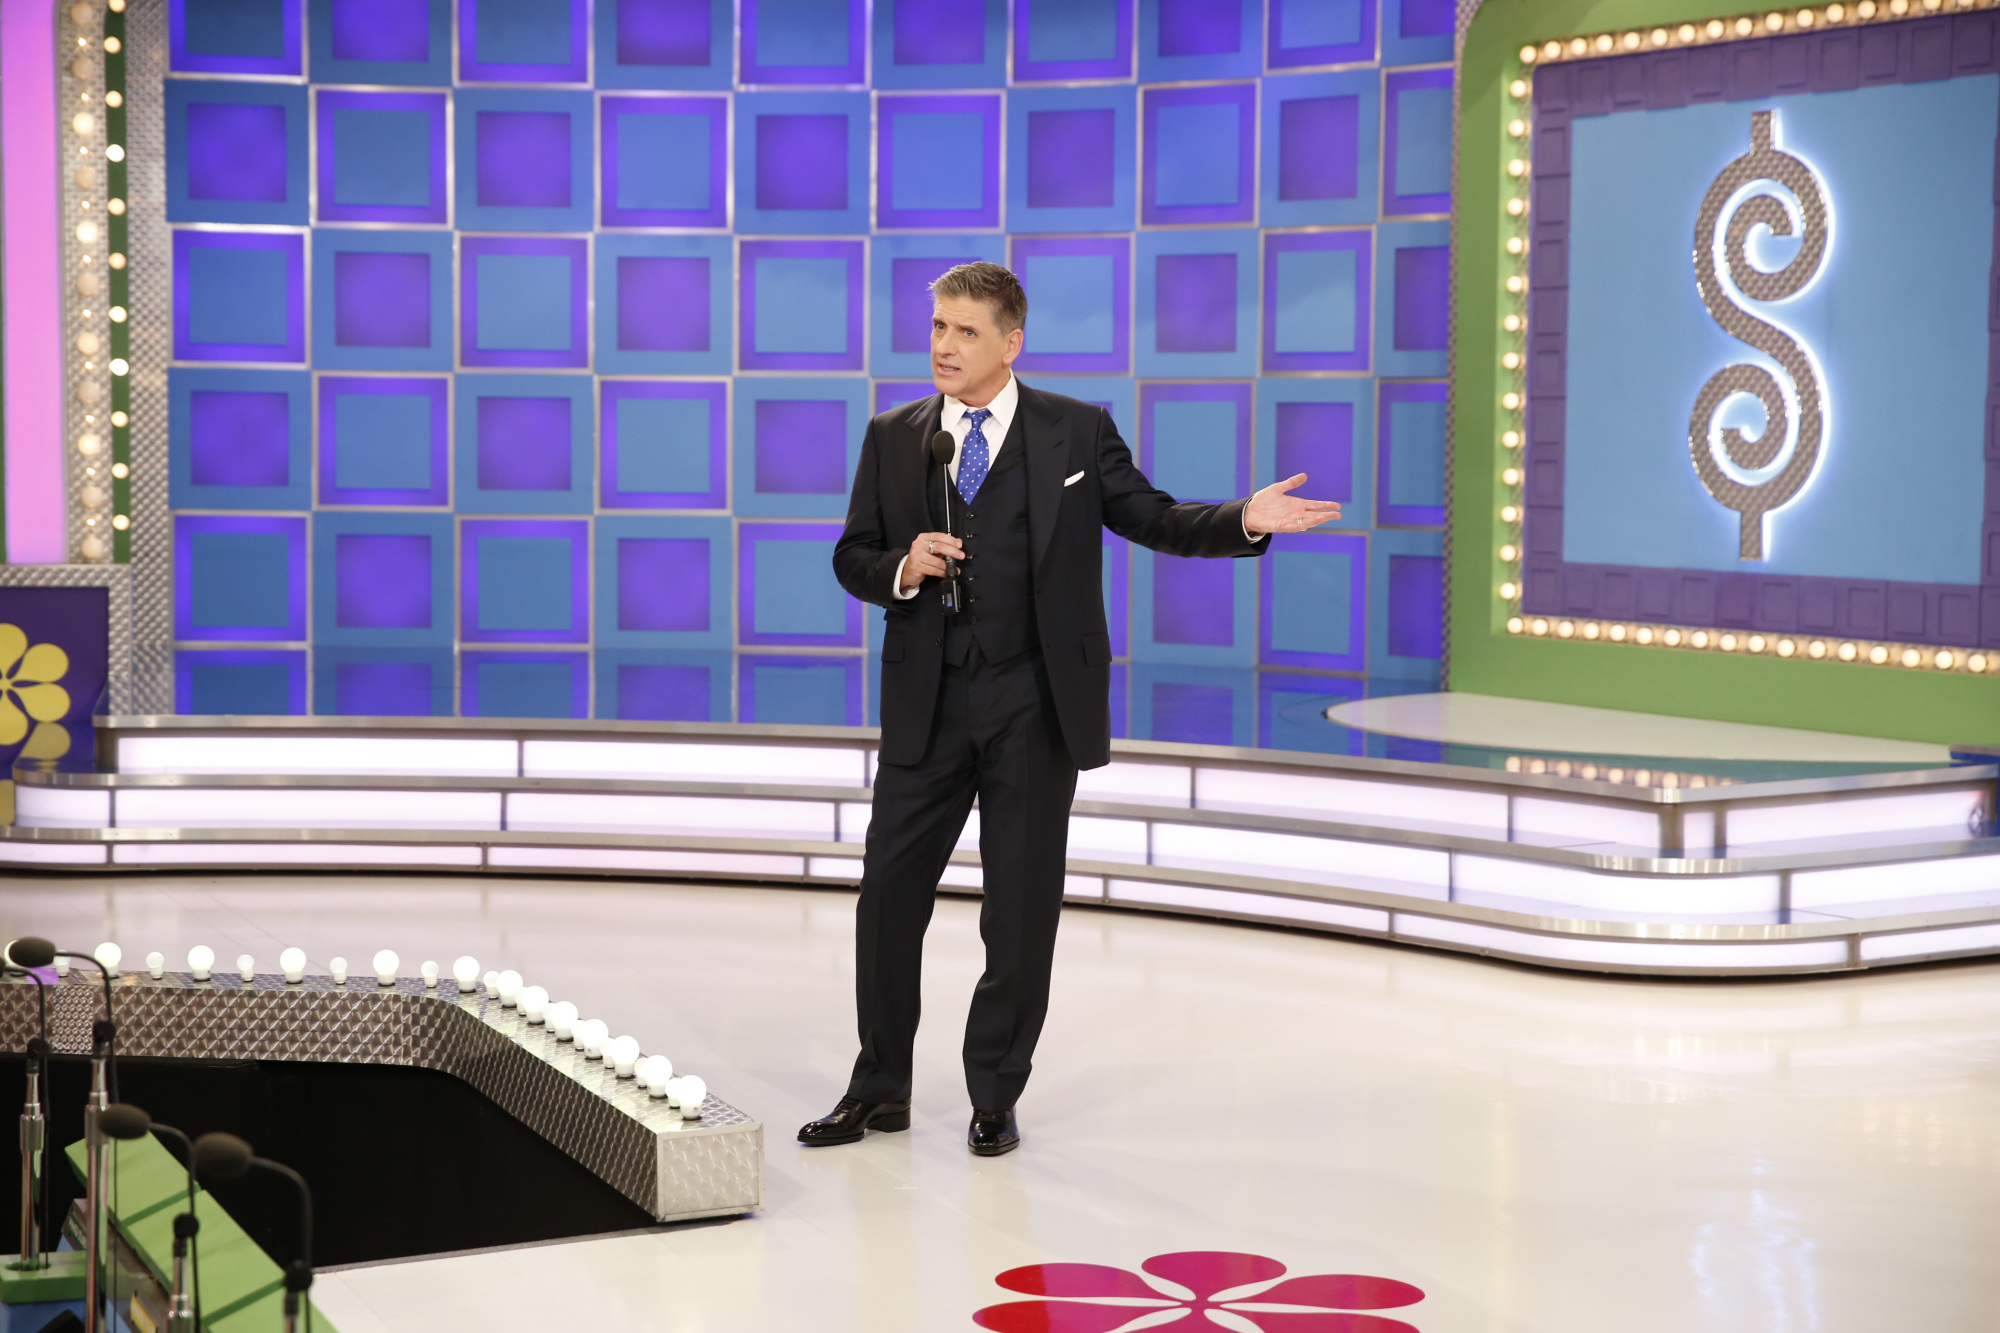 Craig Ferguson Hosts The Price Is Right